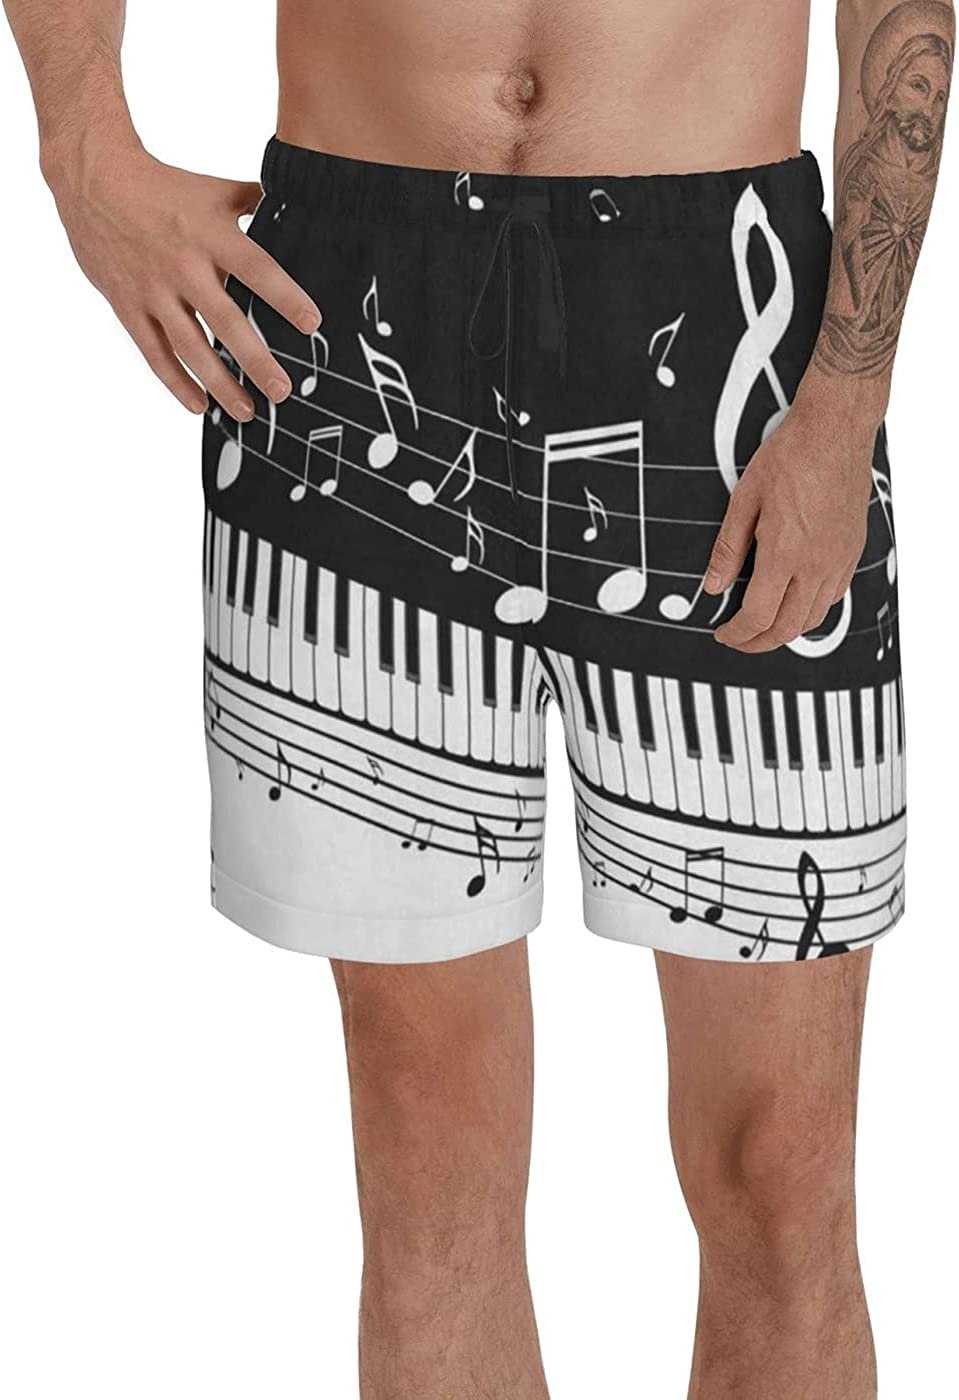 count Piano Keys Musical Men's 3D Printed Funny Summer Quick Dry Swim Short Board Shorts with